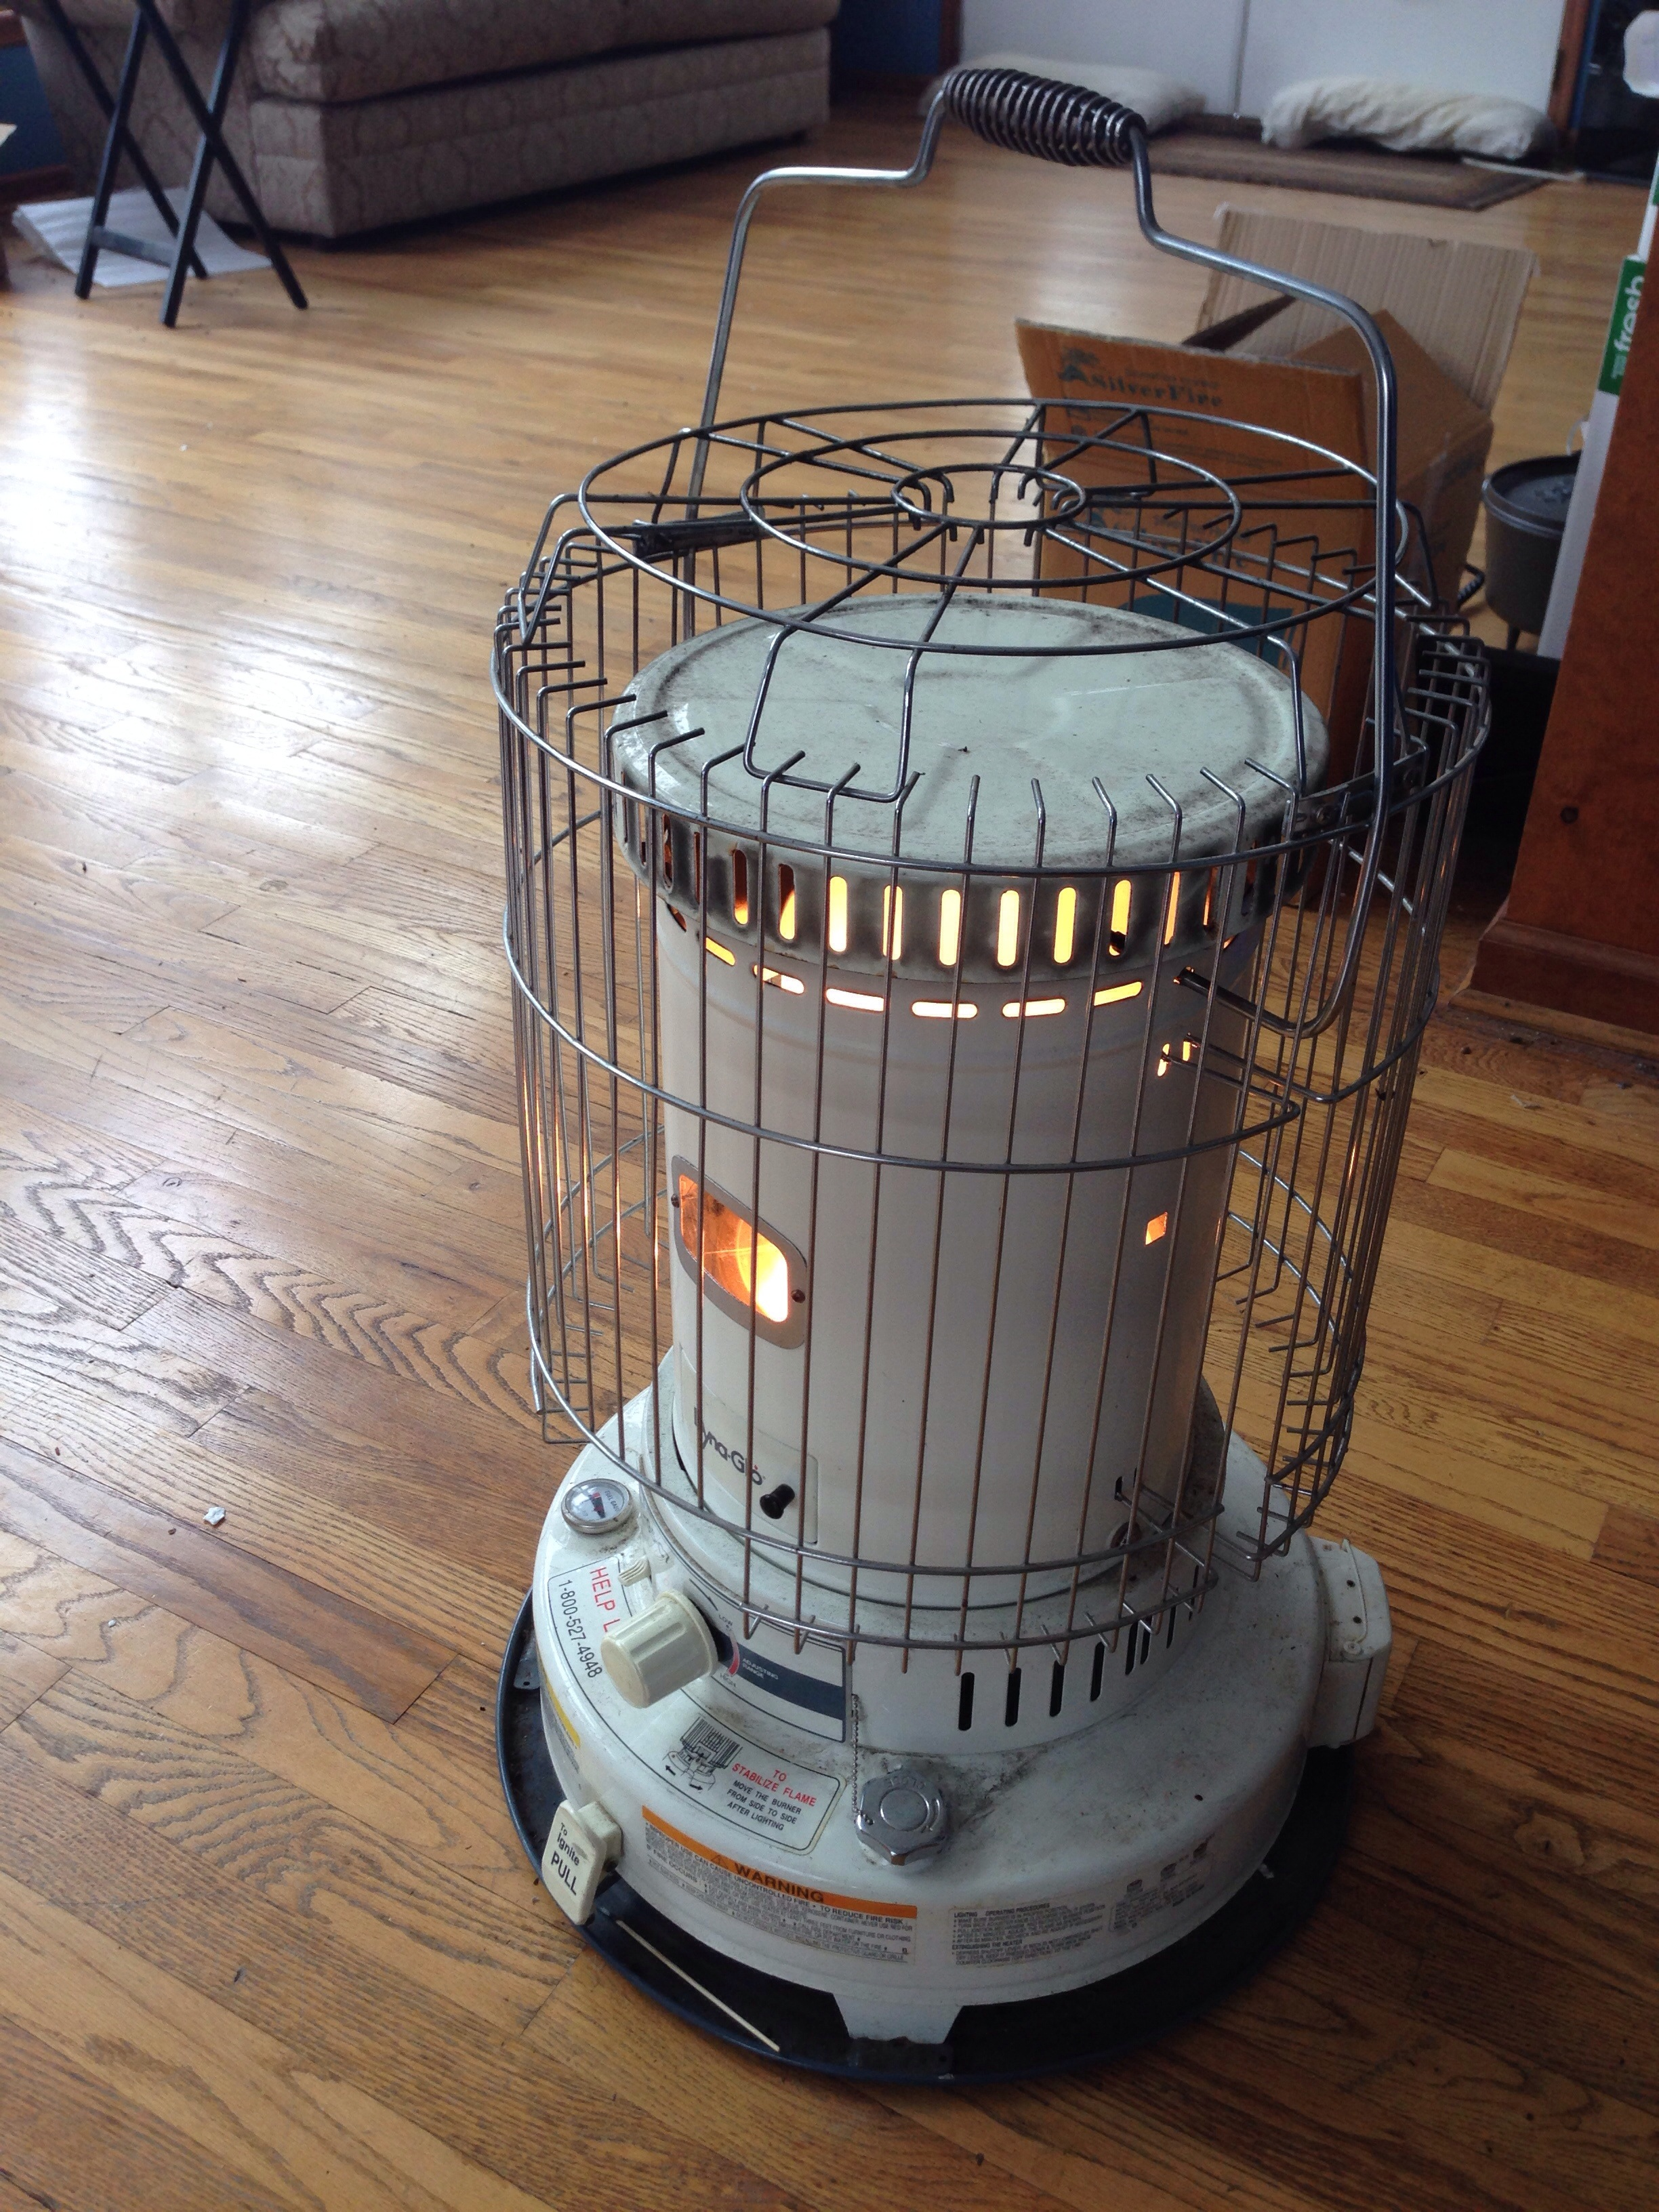 My Kerosene heater